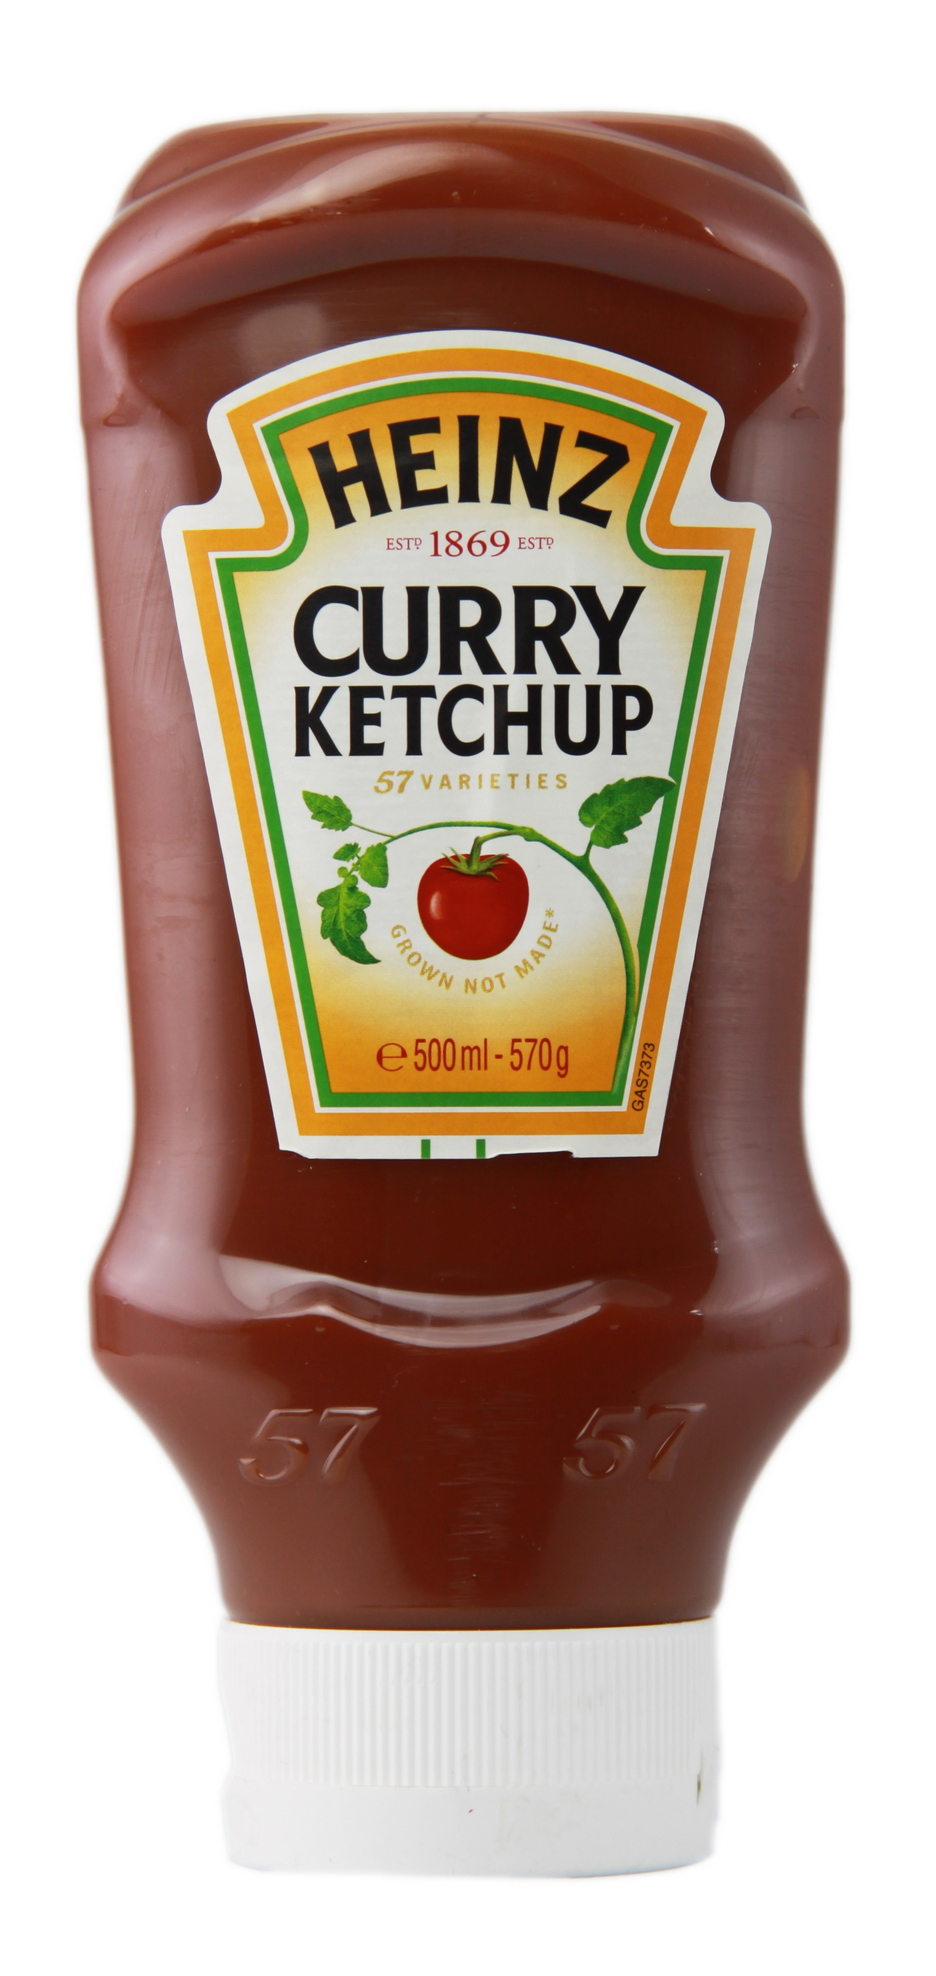 curry ketchup world market zeisner curry ketchup tomatenketchup met ...